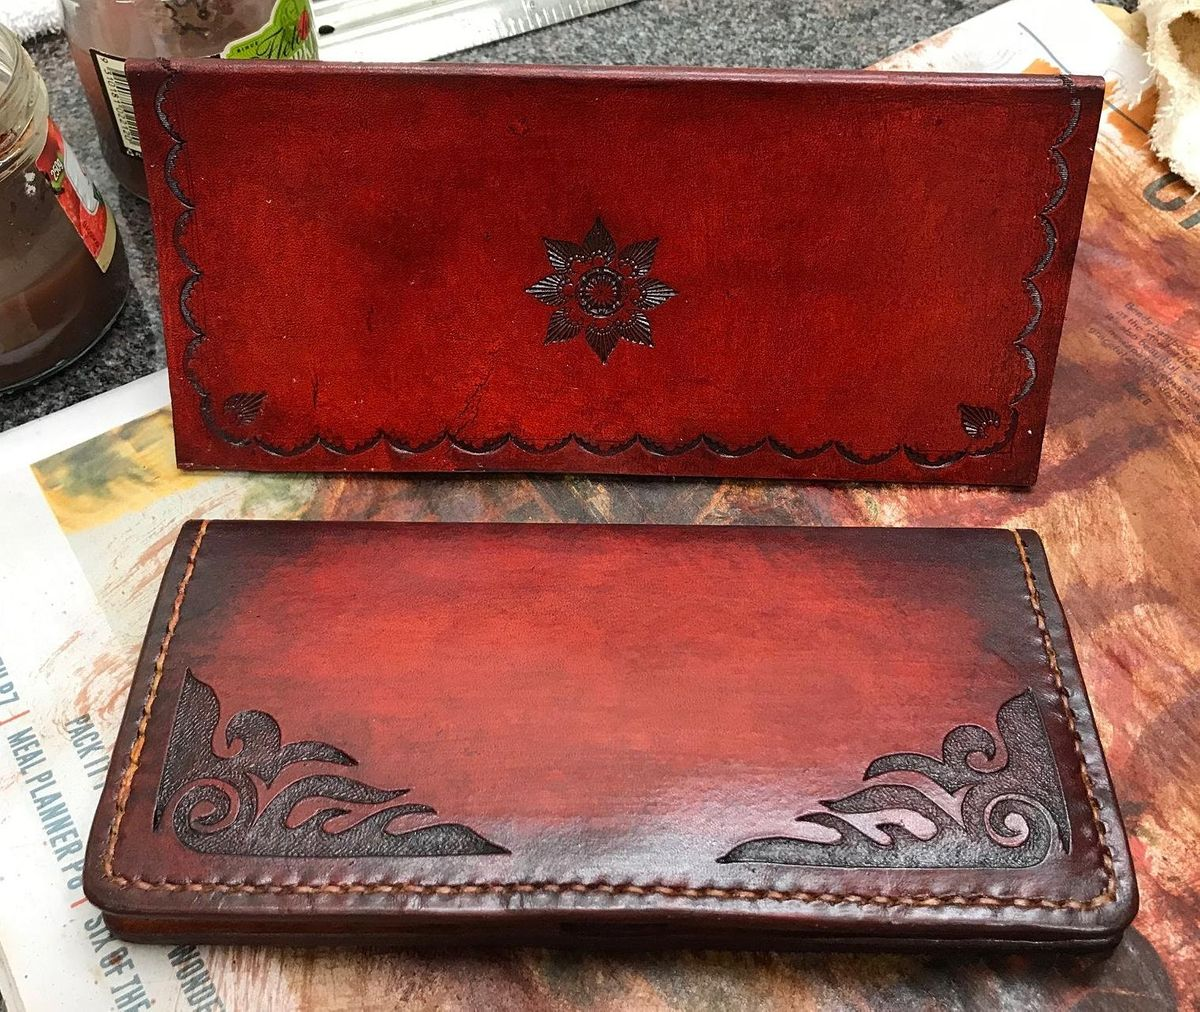 Leather Clutch Purse - Inverted Carving / Stamping, 14 January   Event in West Melbourne   AllEvents.in